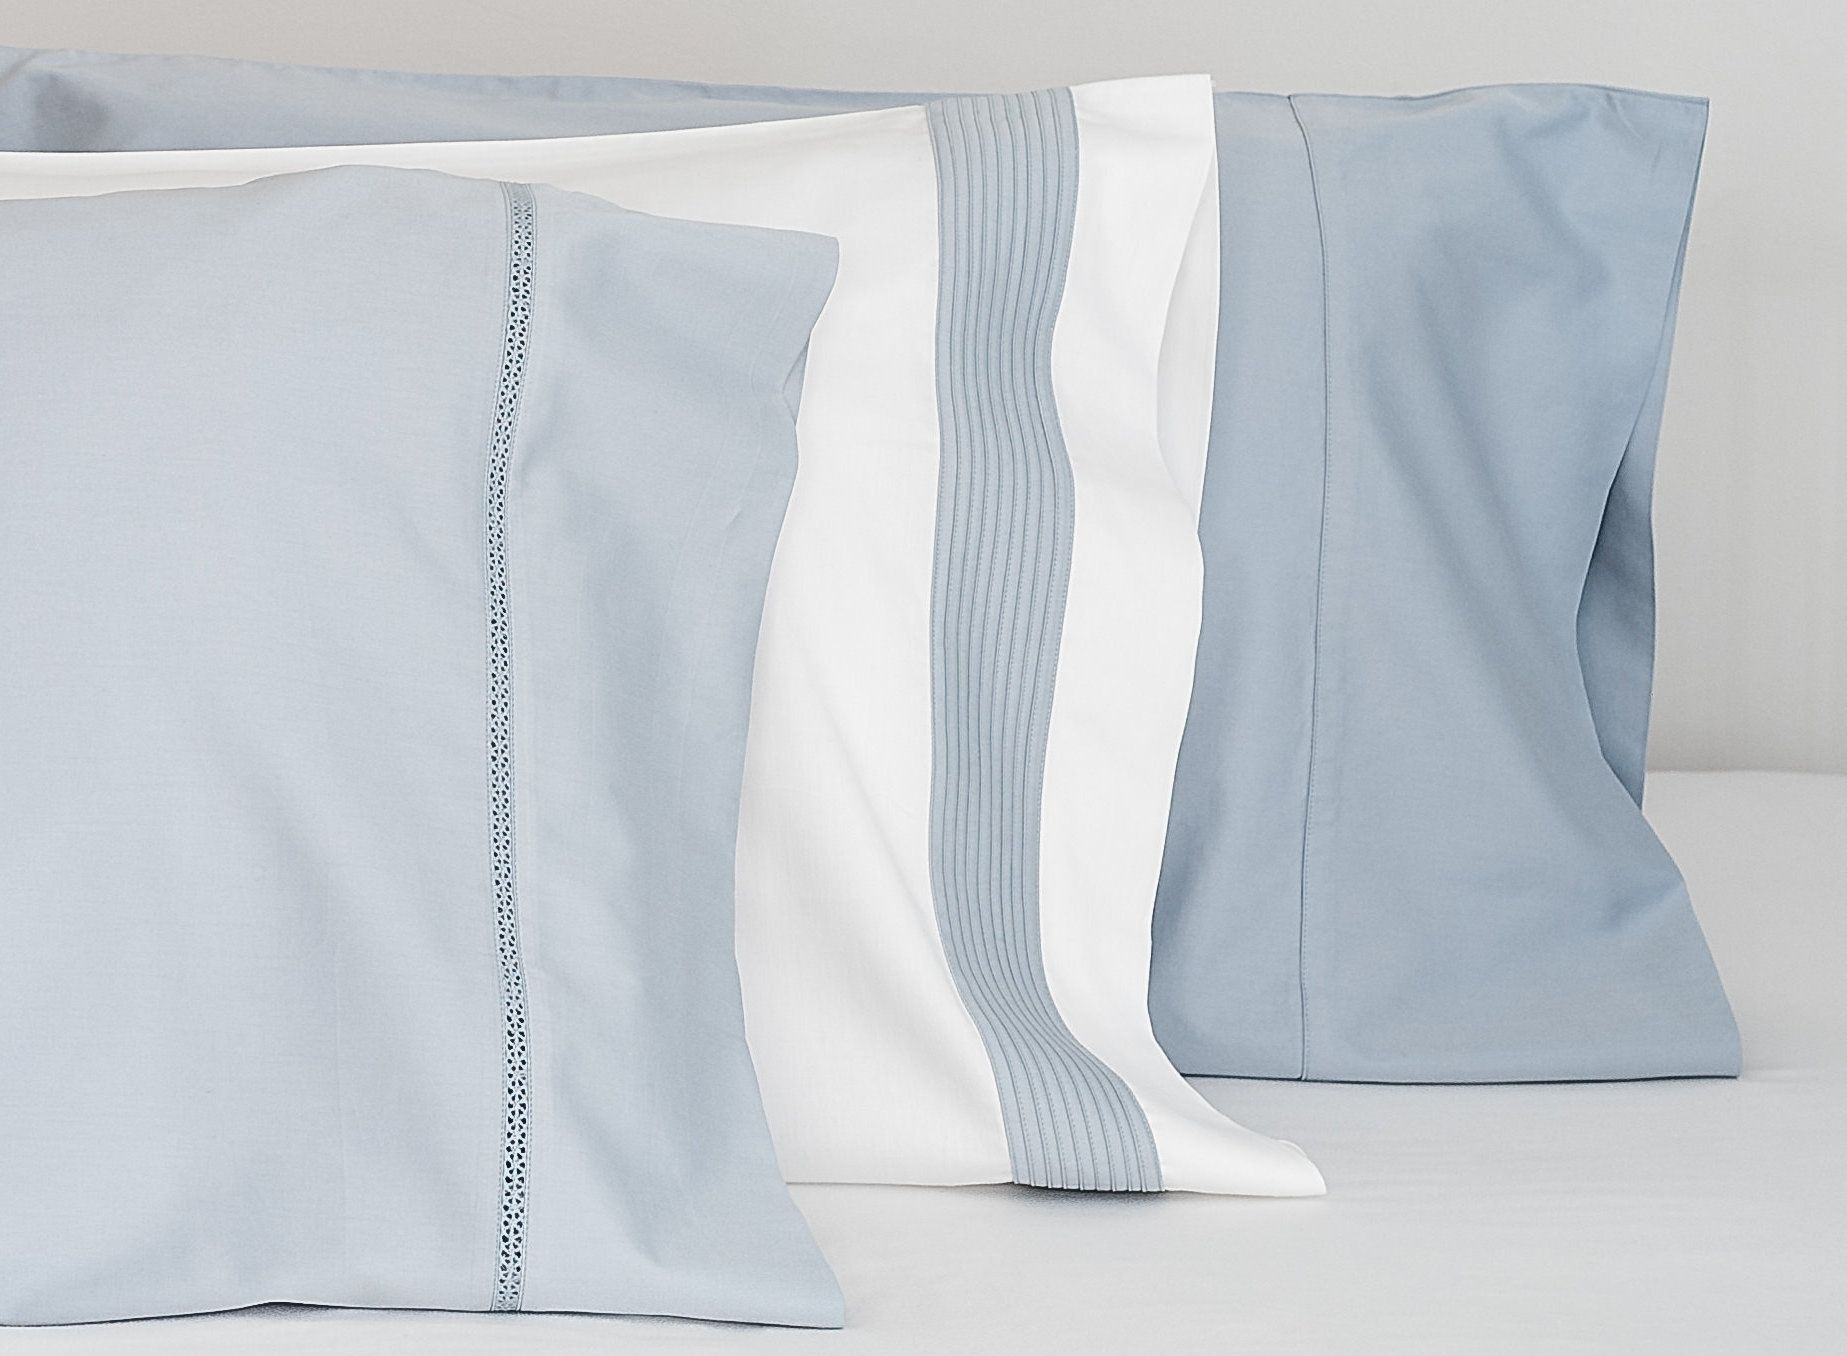 Our Brand New Shoreblue Sheet Set The Color Of Your Dreams In Fair Trade And Organic As You Can Alway Organic Cotton Sheets Organic Sheets Cotton Bedding